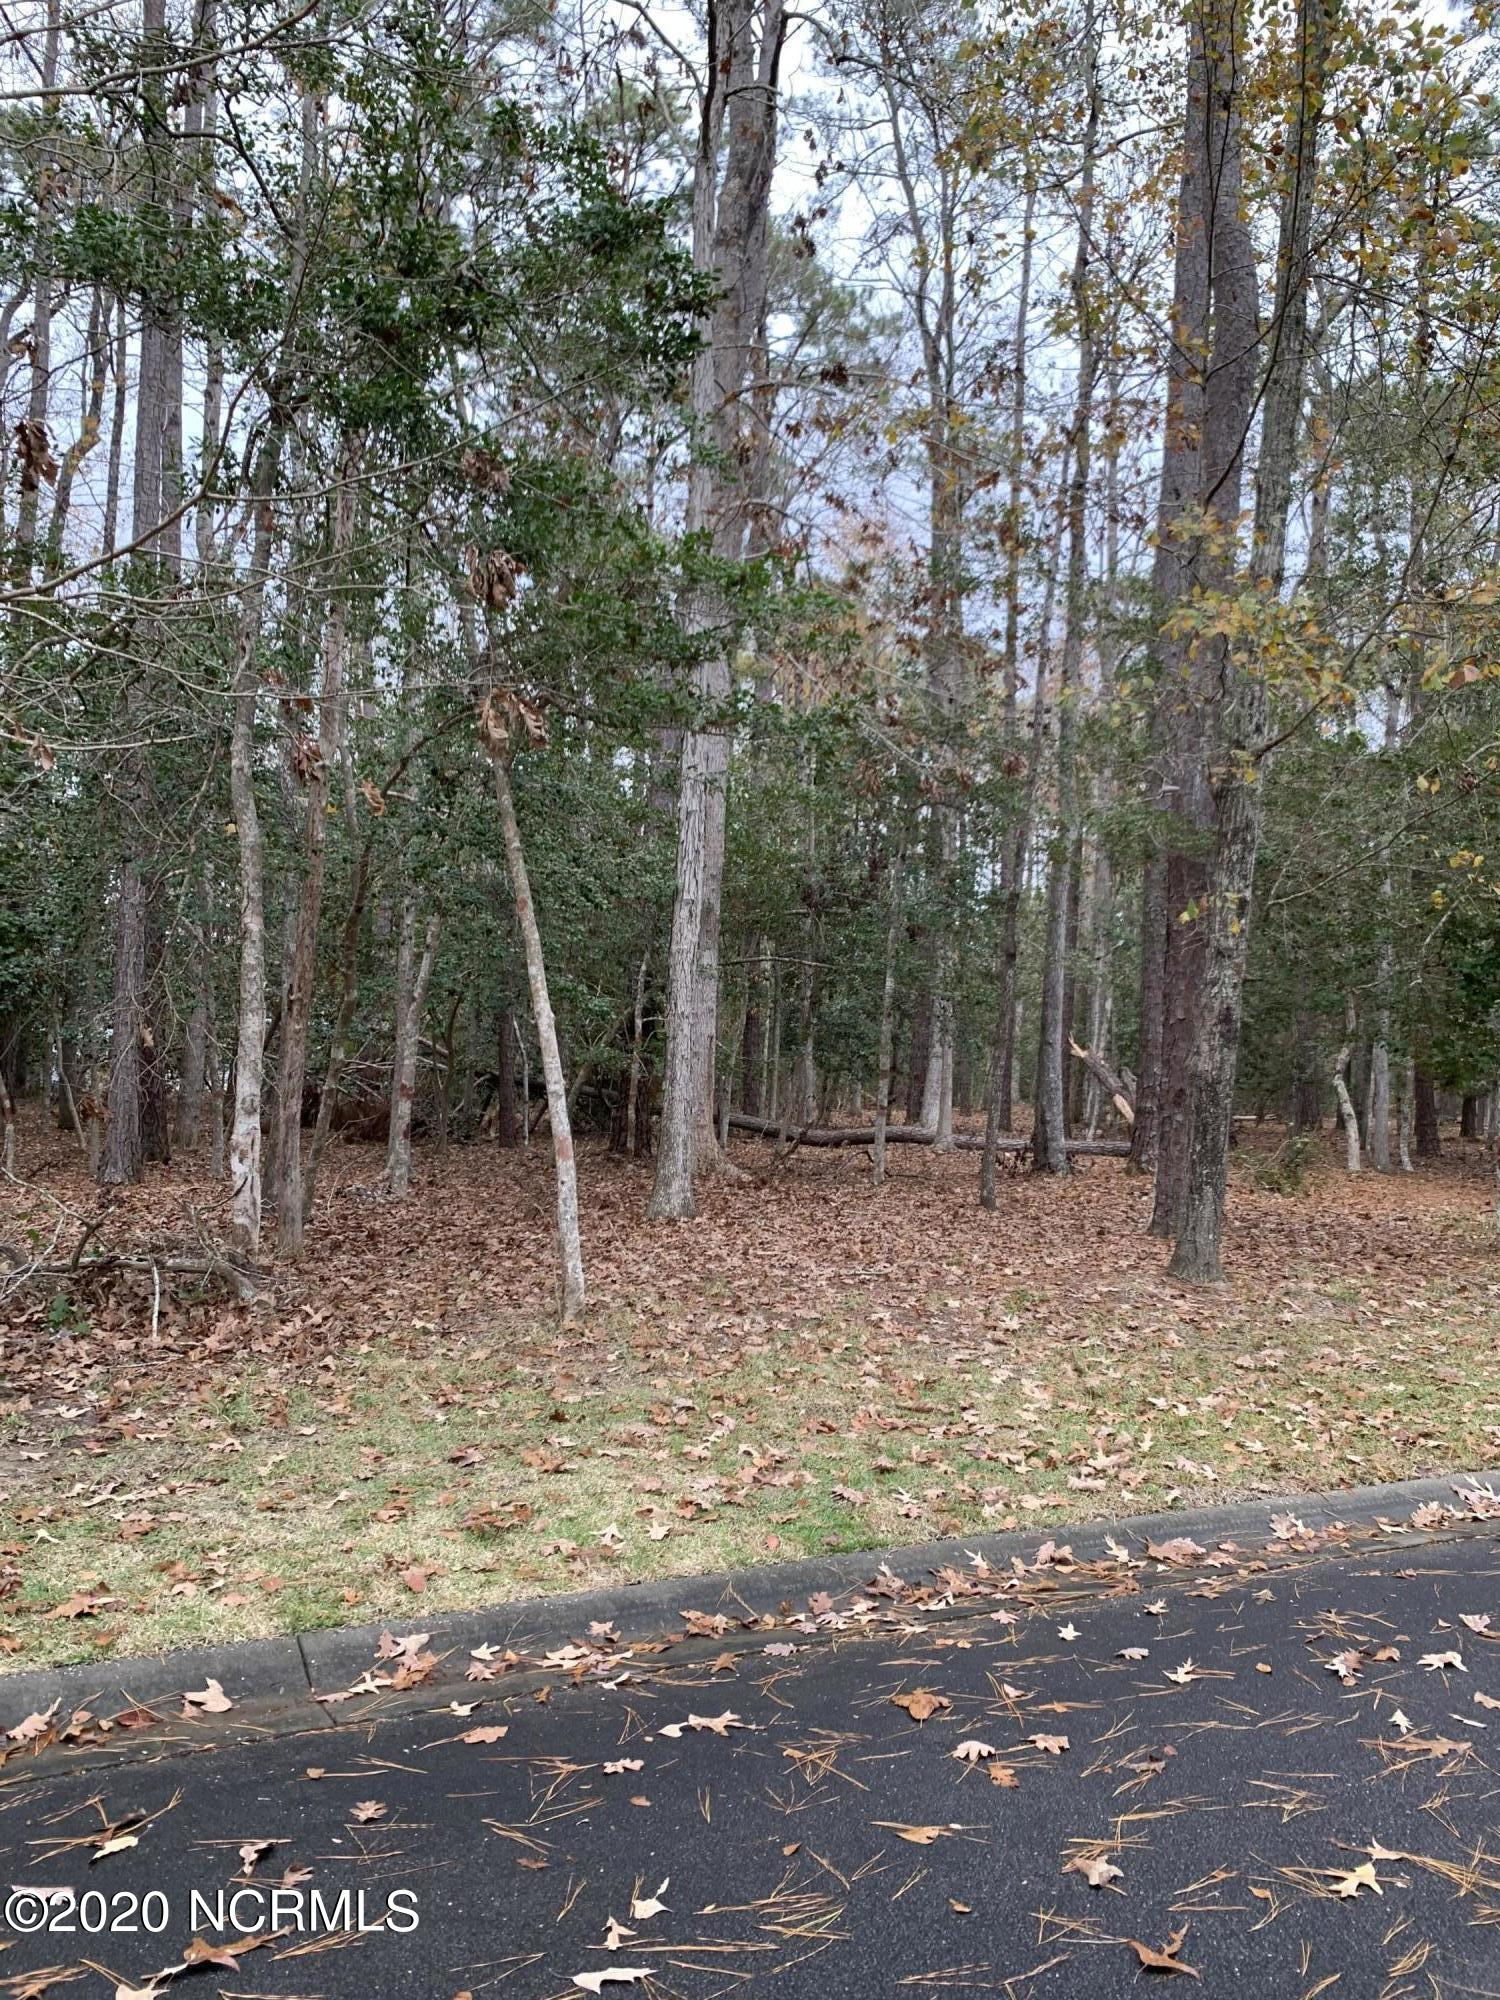 Lot 63 Fairway Crest Drive, Shallotte, North Carolina 28470, ,Residential land,For sale,Fairway Crest,100249109